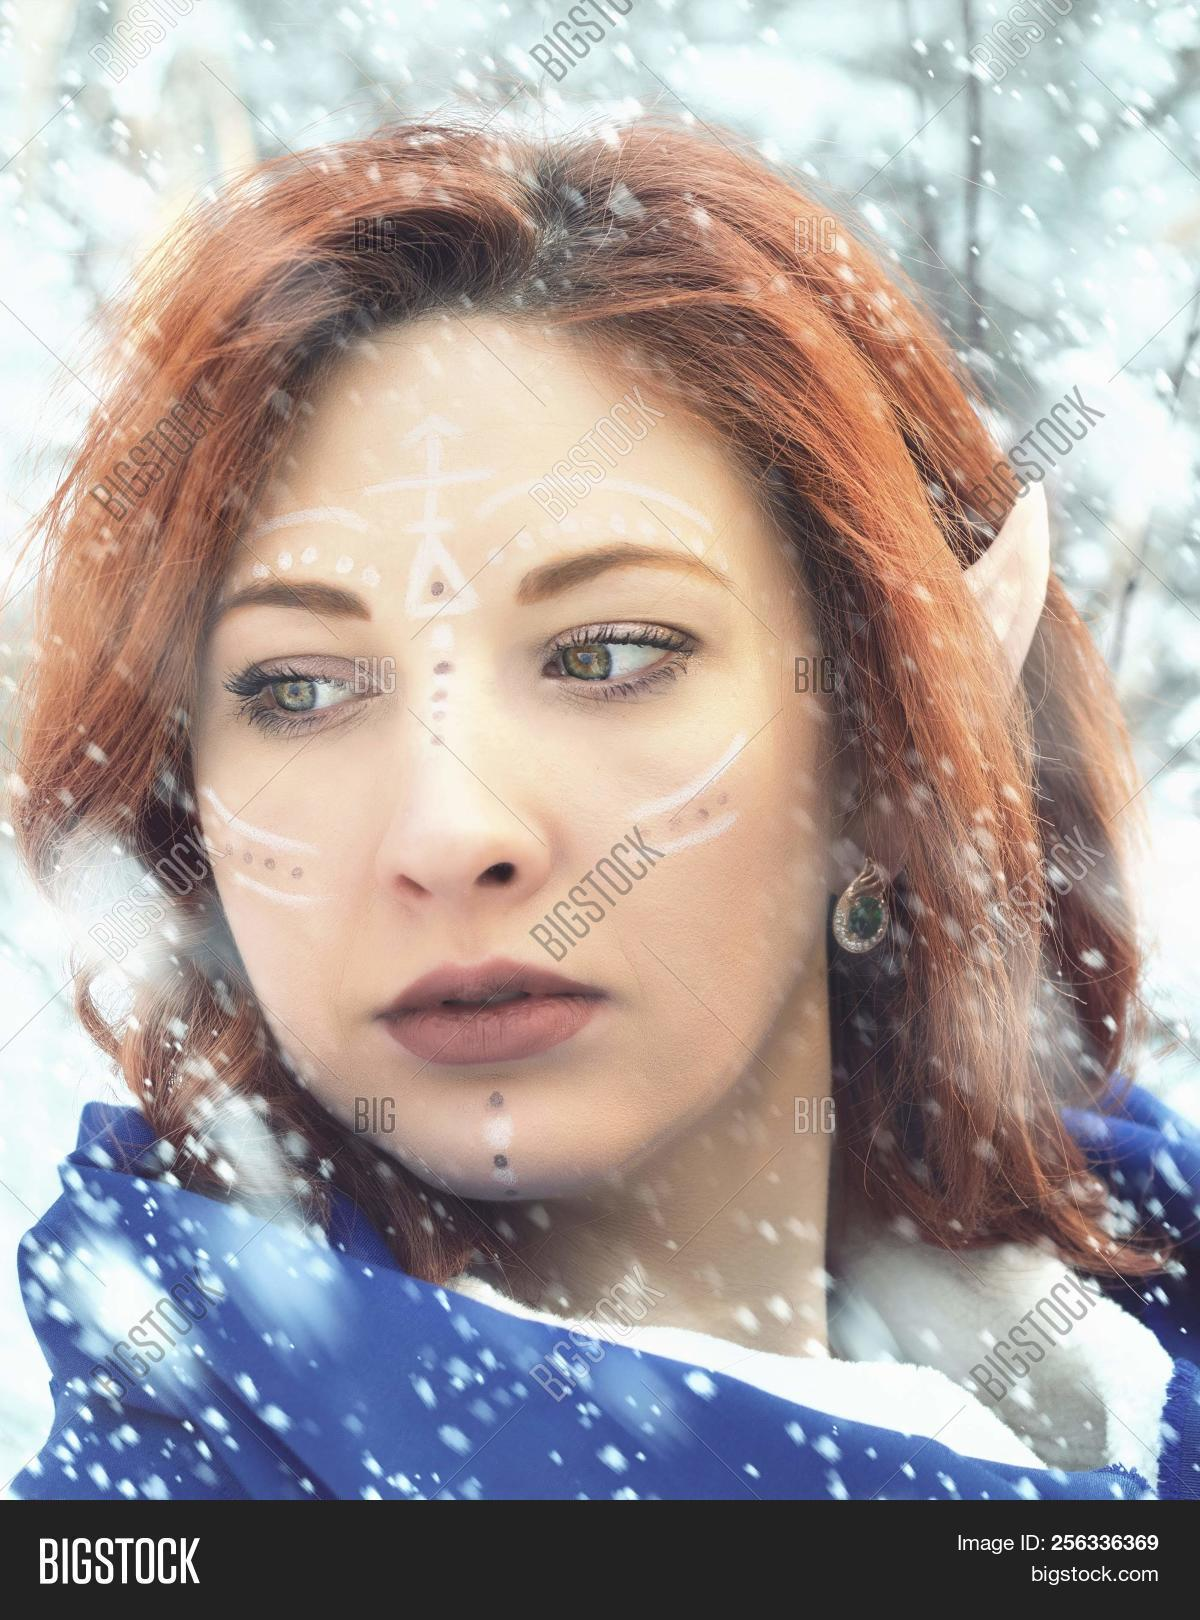 Elf Fairy woman. Close up portrait of an elf girl. Cold snowstorm in winter.